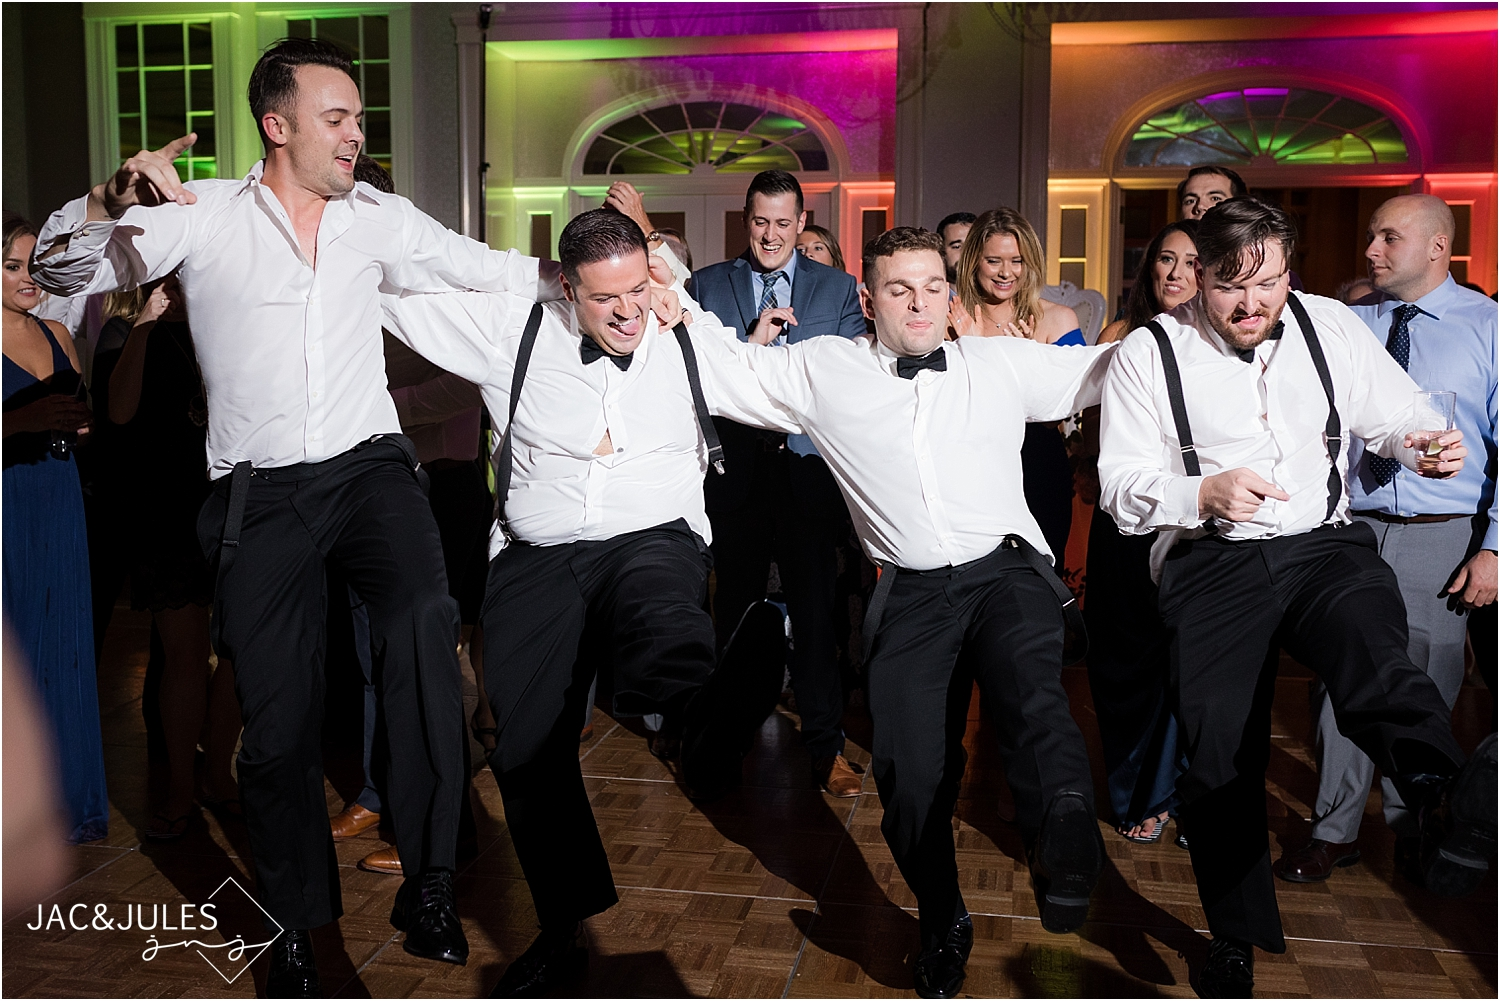 groom with his groomsmen dancing at wedding reception